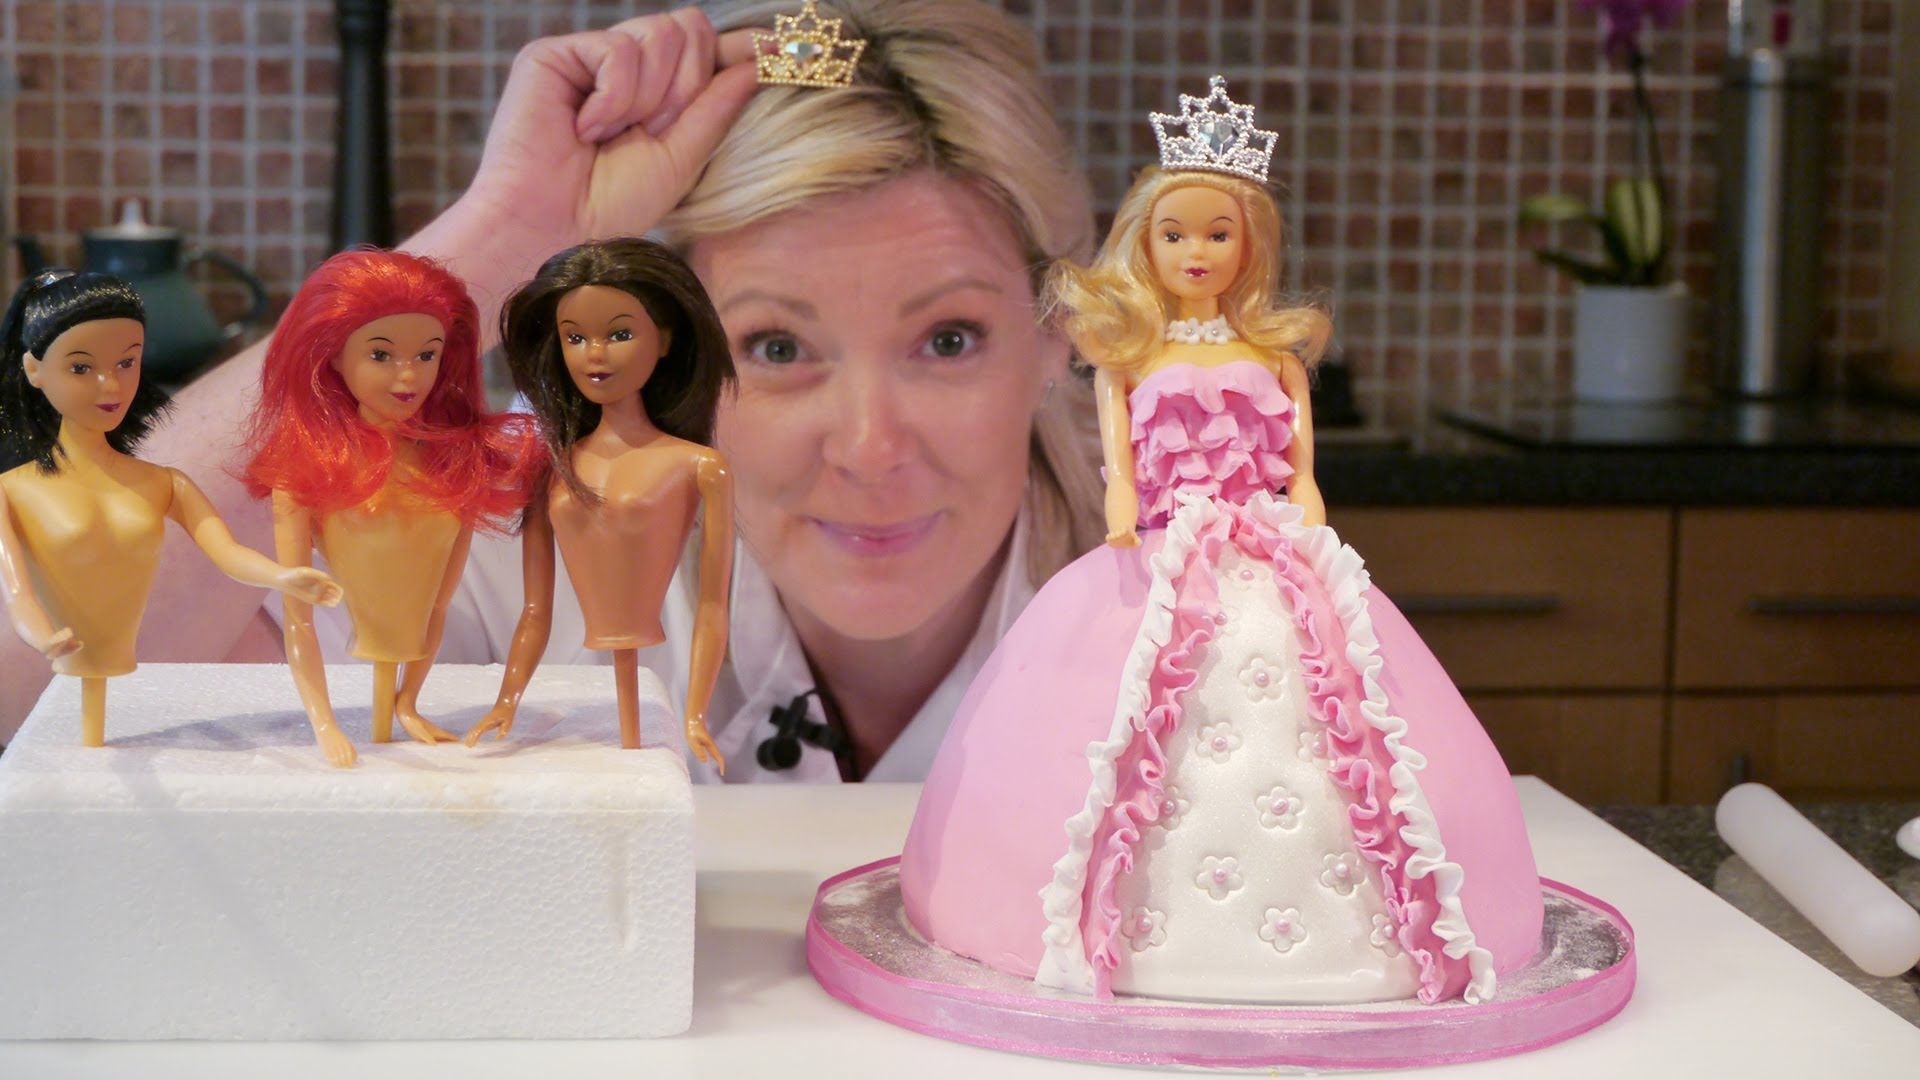 How To Make A Barbie Doll Princess Cake with icing Cake Craft